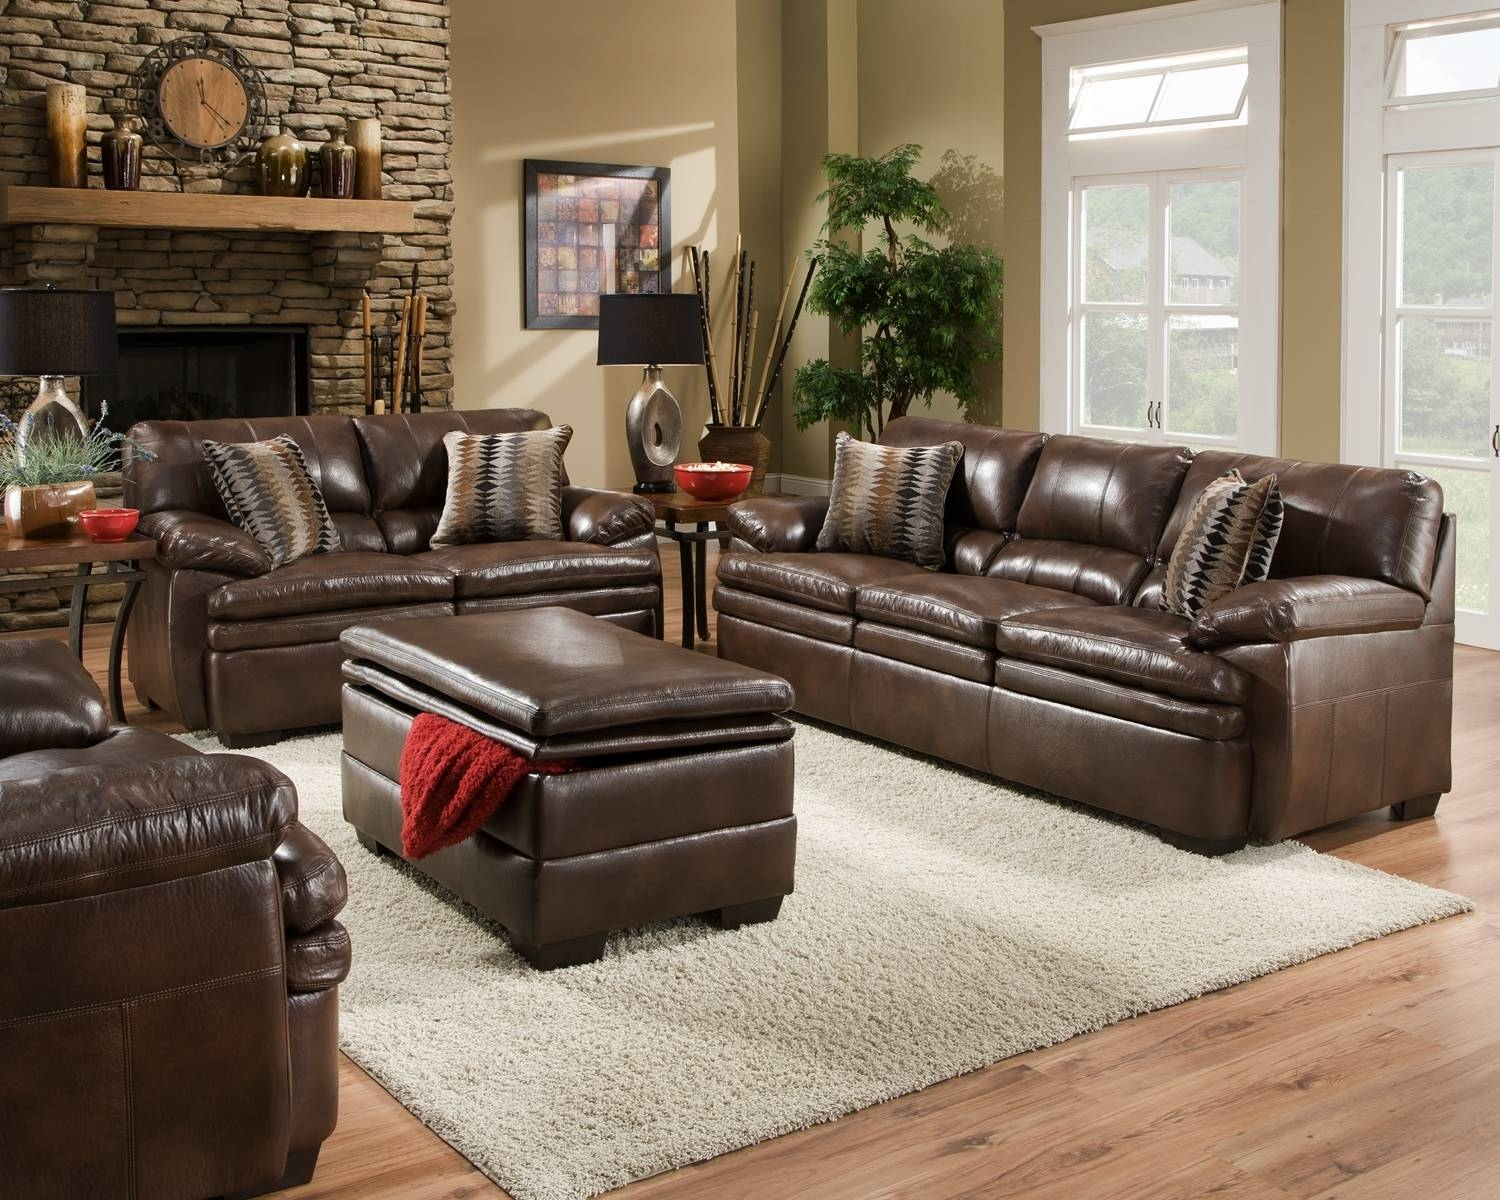 Brown Bonded Leather Sofa Set Casual Living Room Furniture W Within Casual Sofas And Chairs (View 4 of 15)